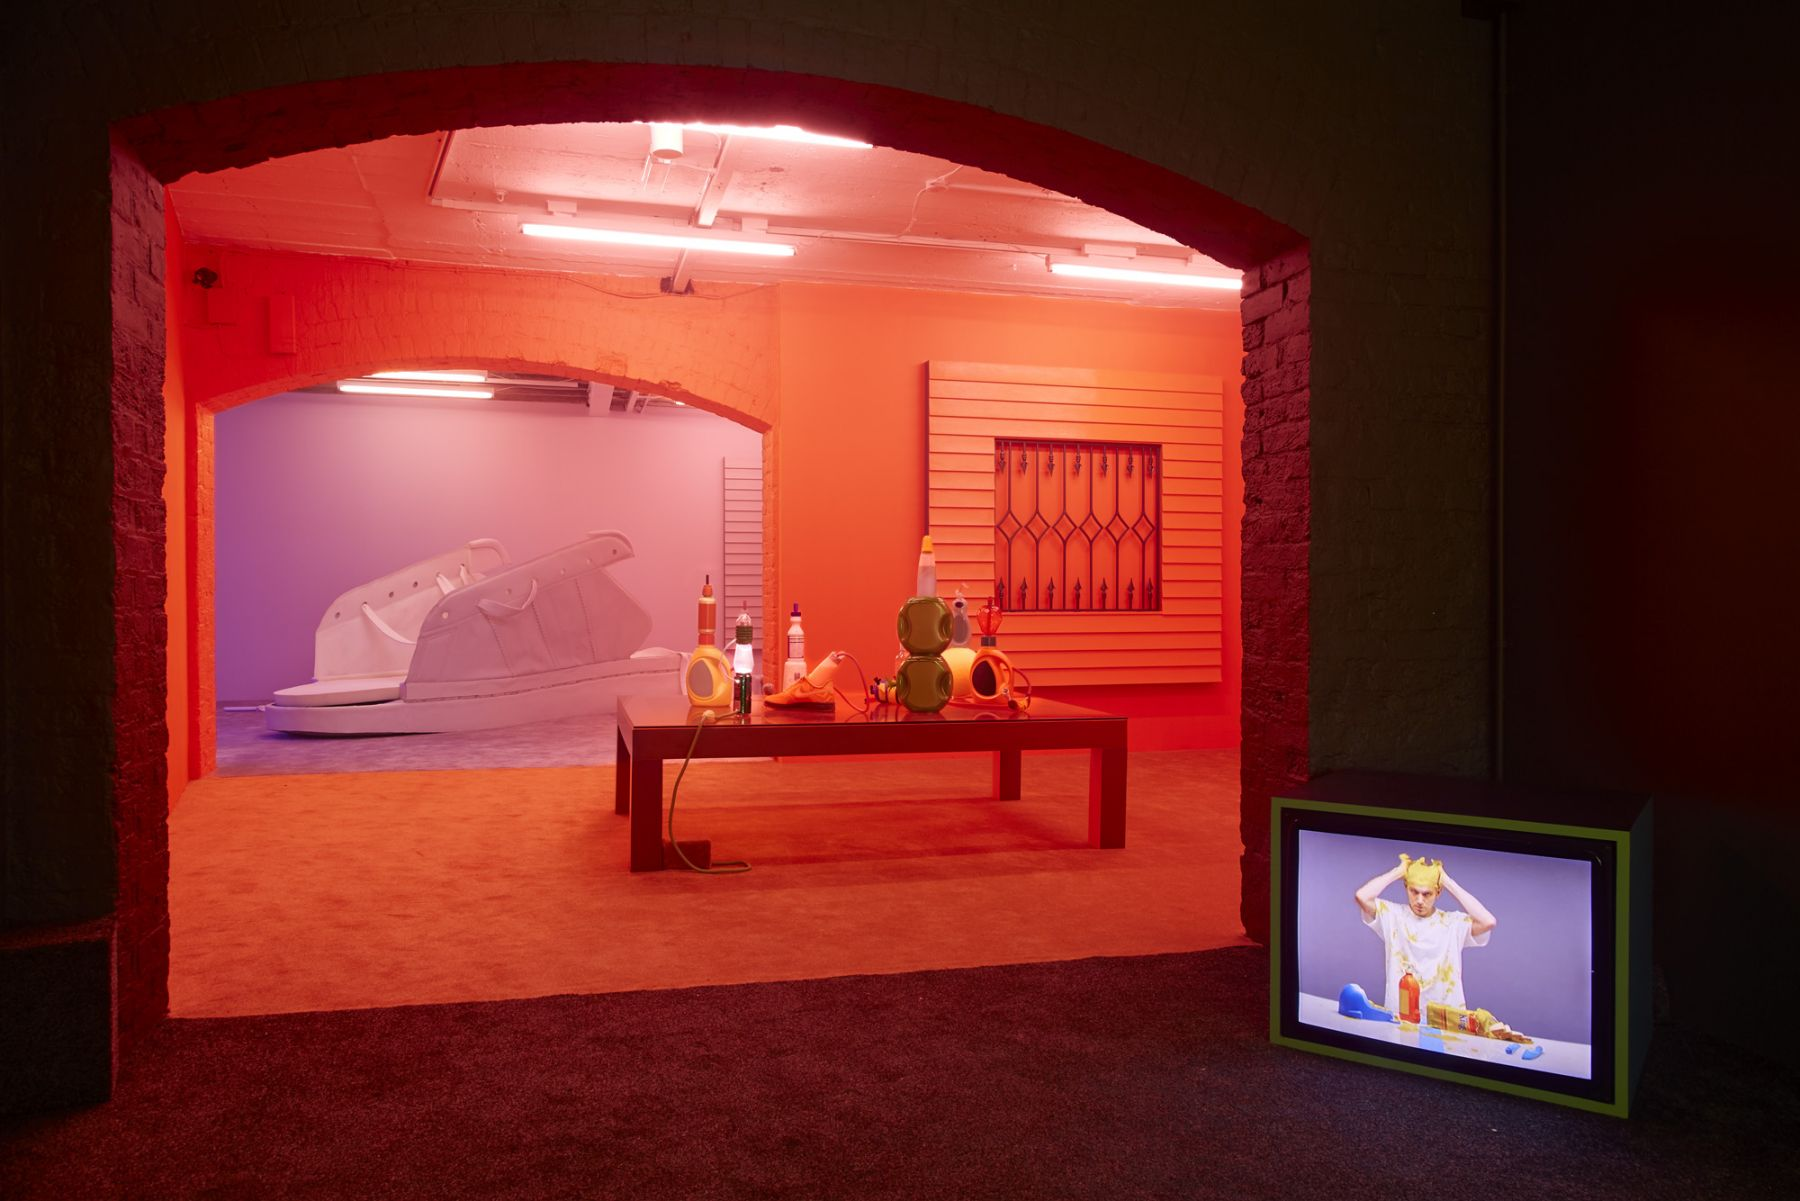 Alex Da Corte, BAD LAND, installation view, Josh Lilley, London, November 2017. Courtesy the artist and Josh Lilley, London